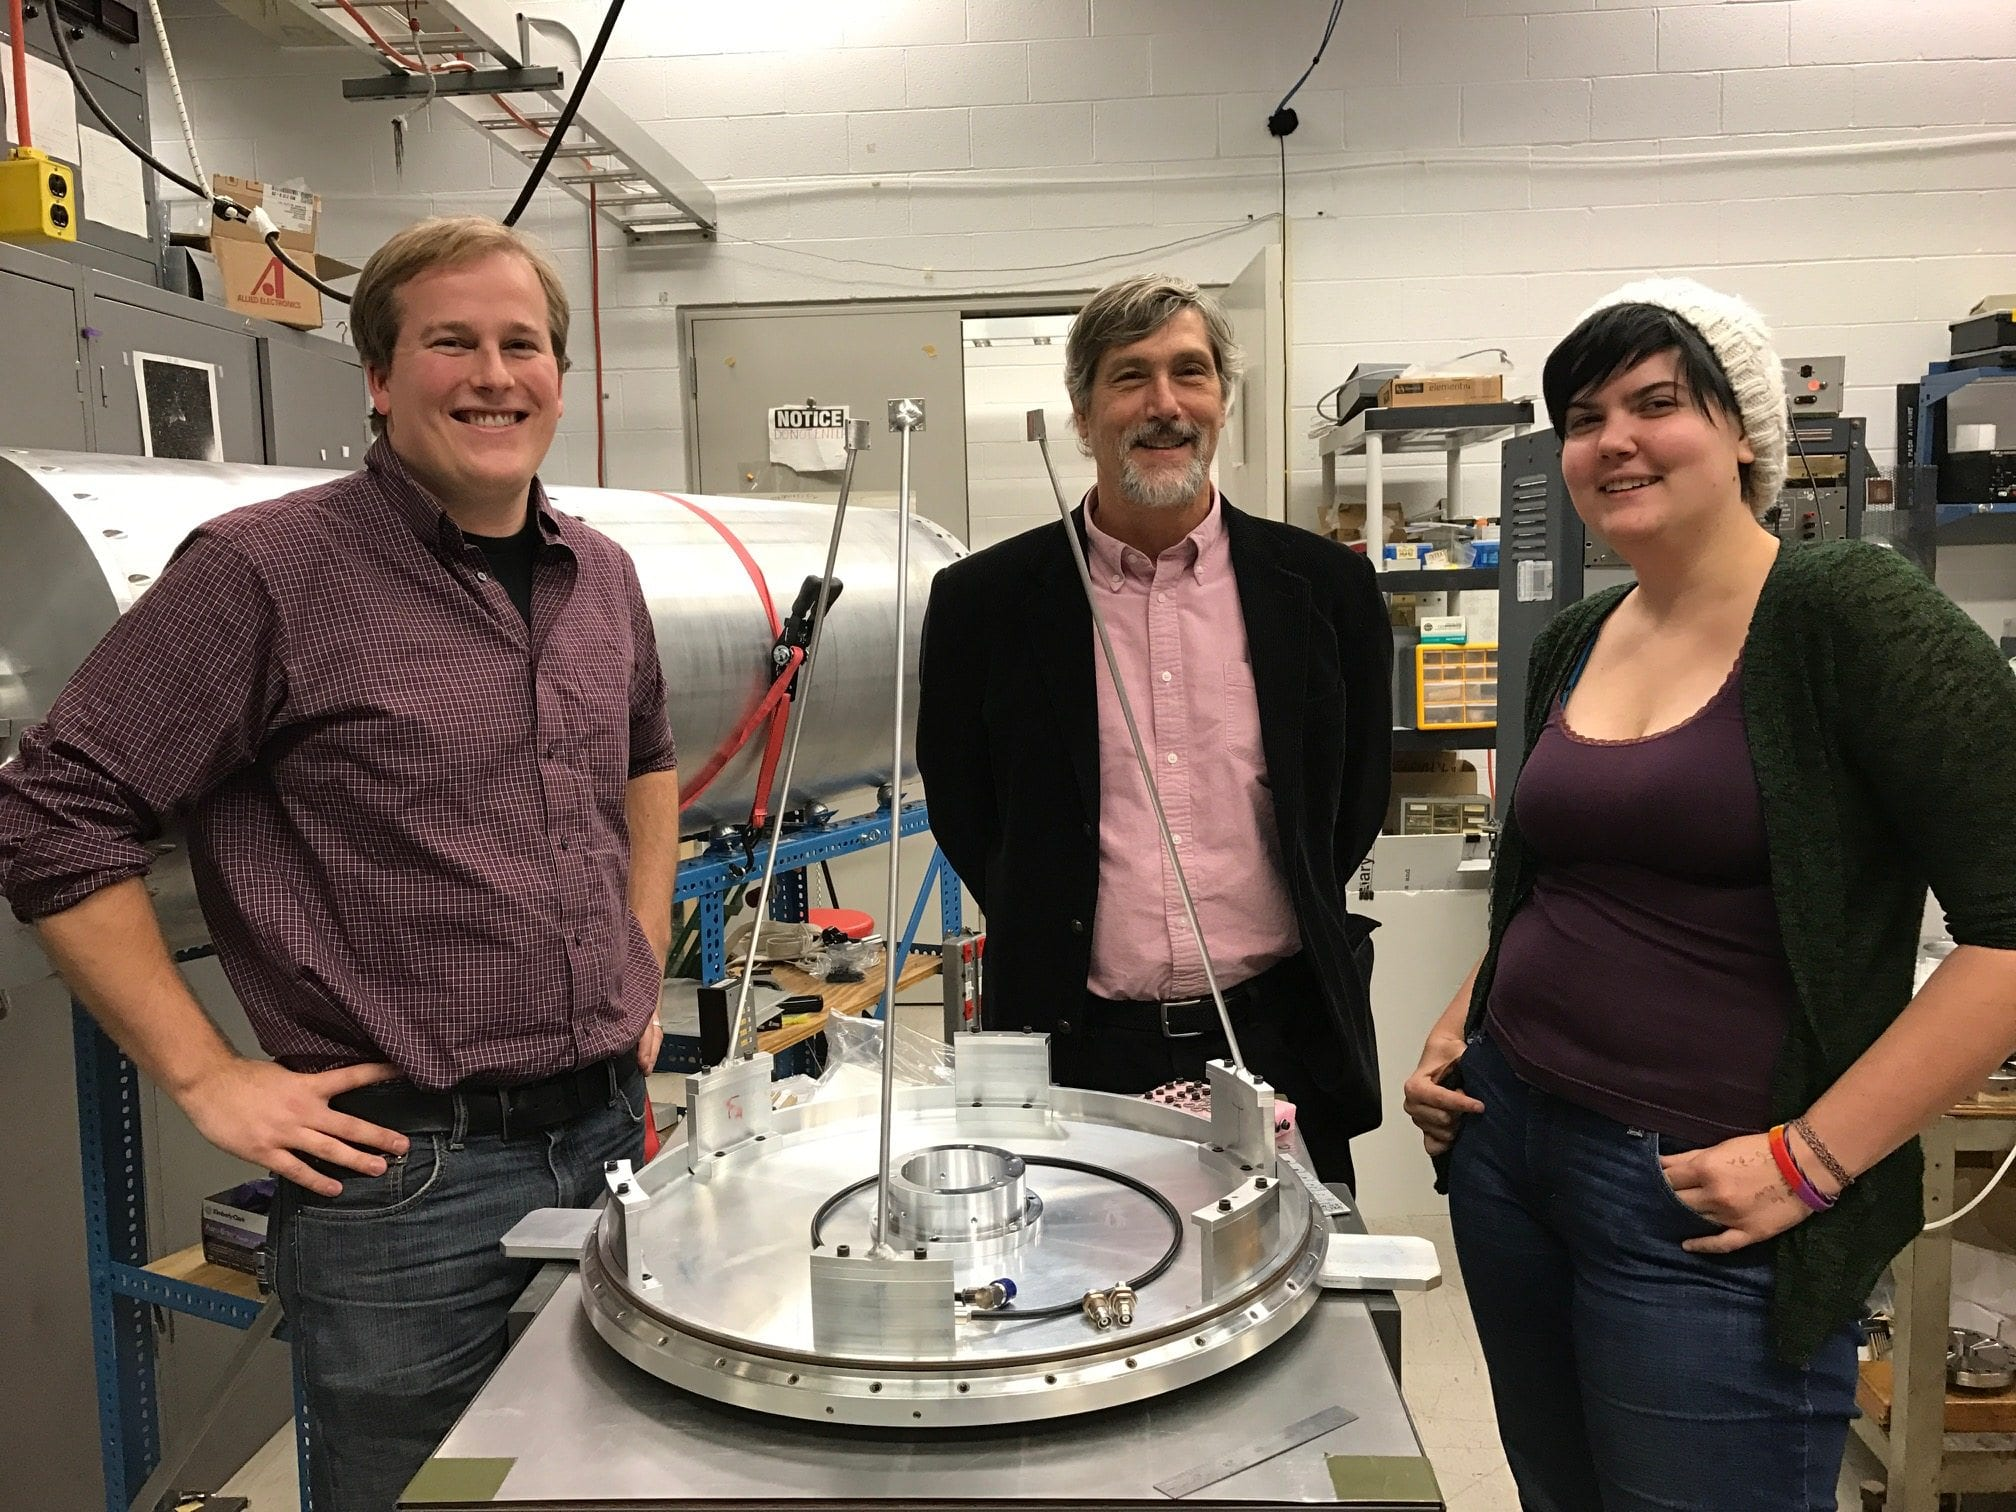 Stephan McCandliss and Team Awarded Astrophysics Research Analysis Grant from NASA for FORTIS Sounding Rocket Experiment